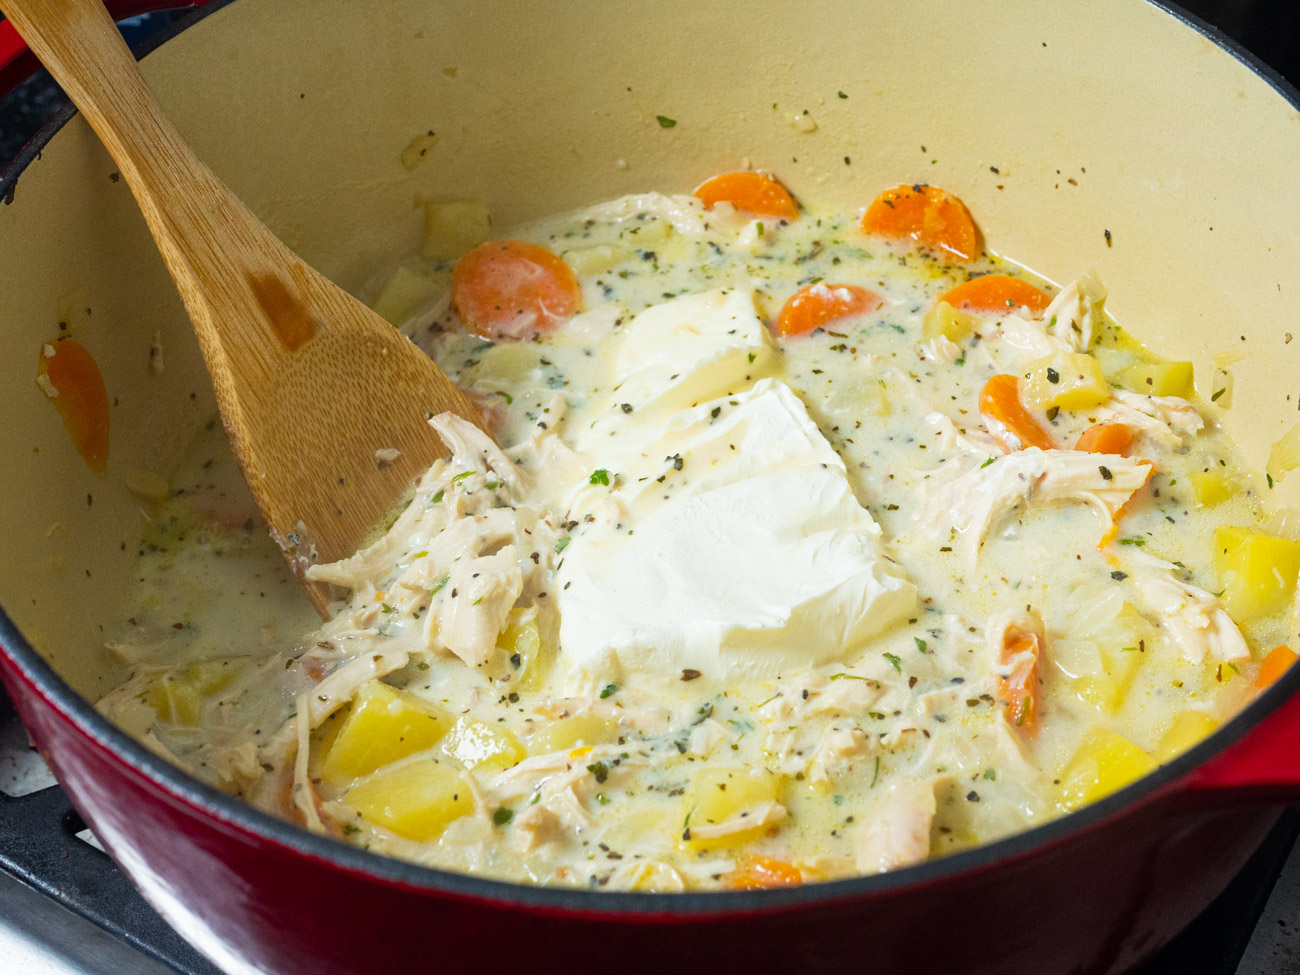 Finally, add cream cheese to the soup and let it cook for 5 minutes or until the cream cheese is completely melted.